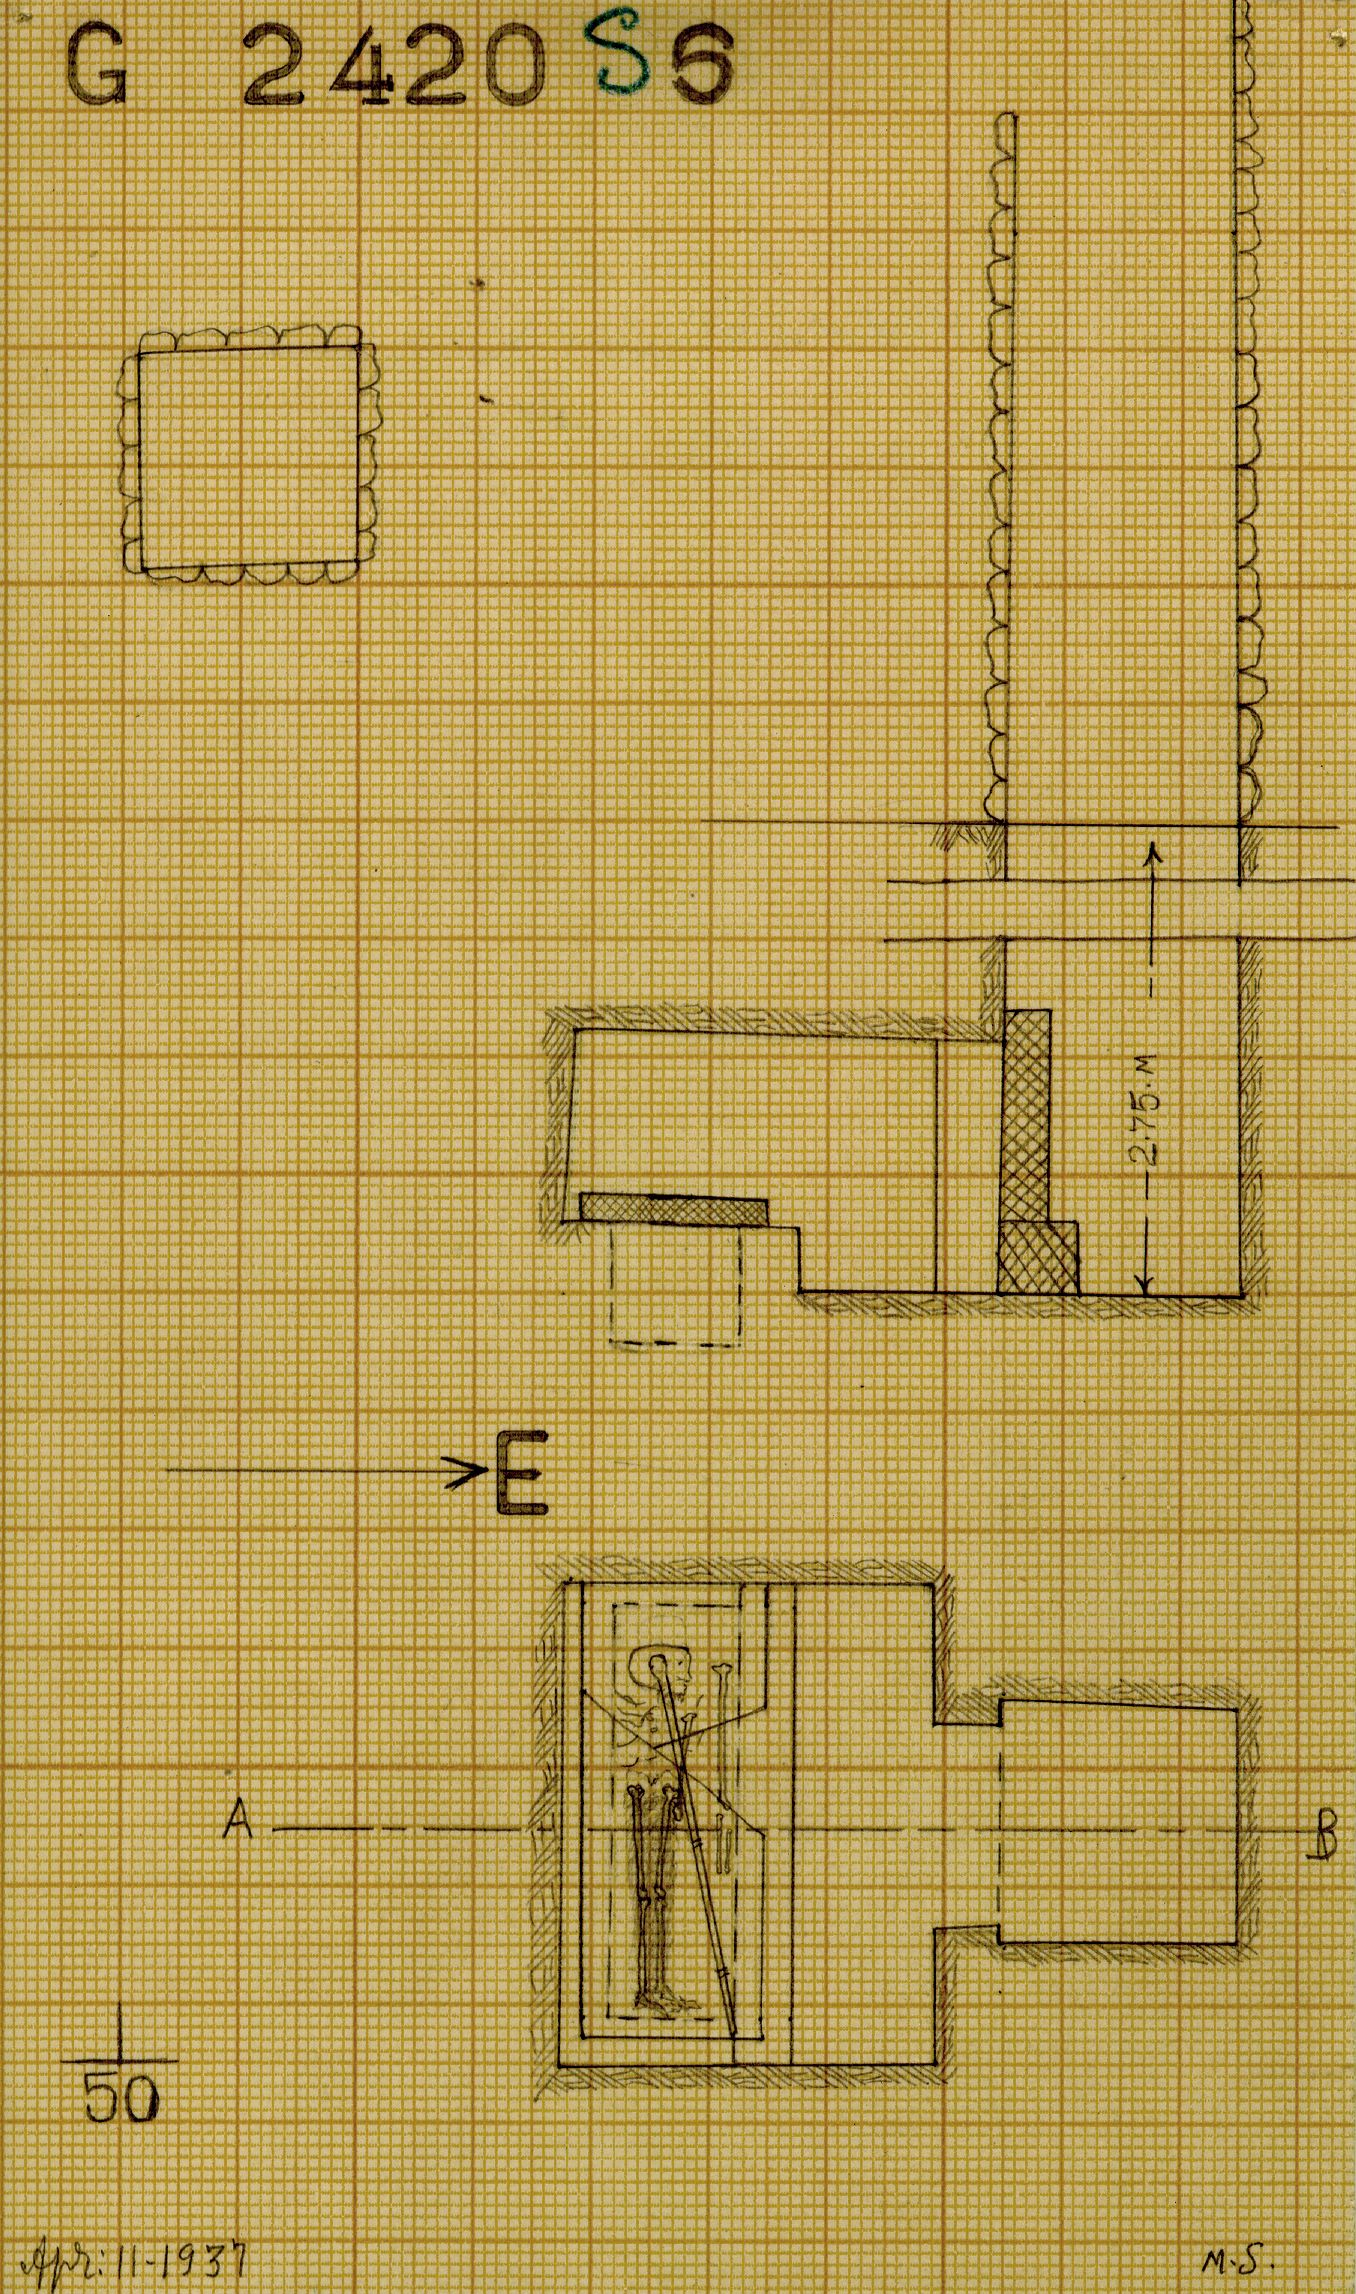 Maps and plans: G 2420, Shaft S